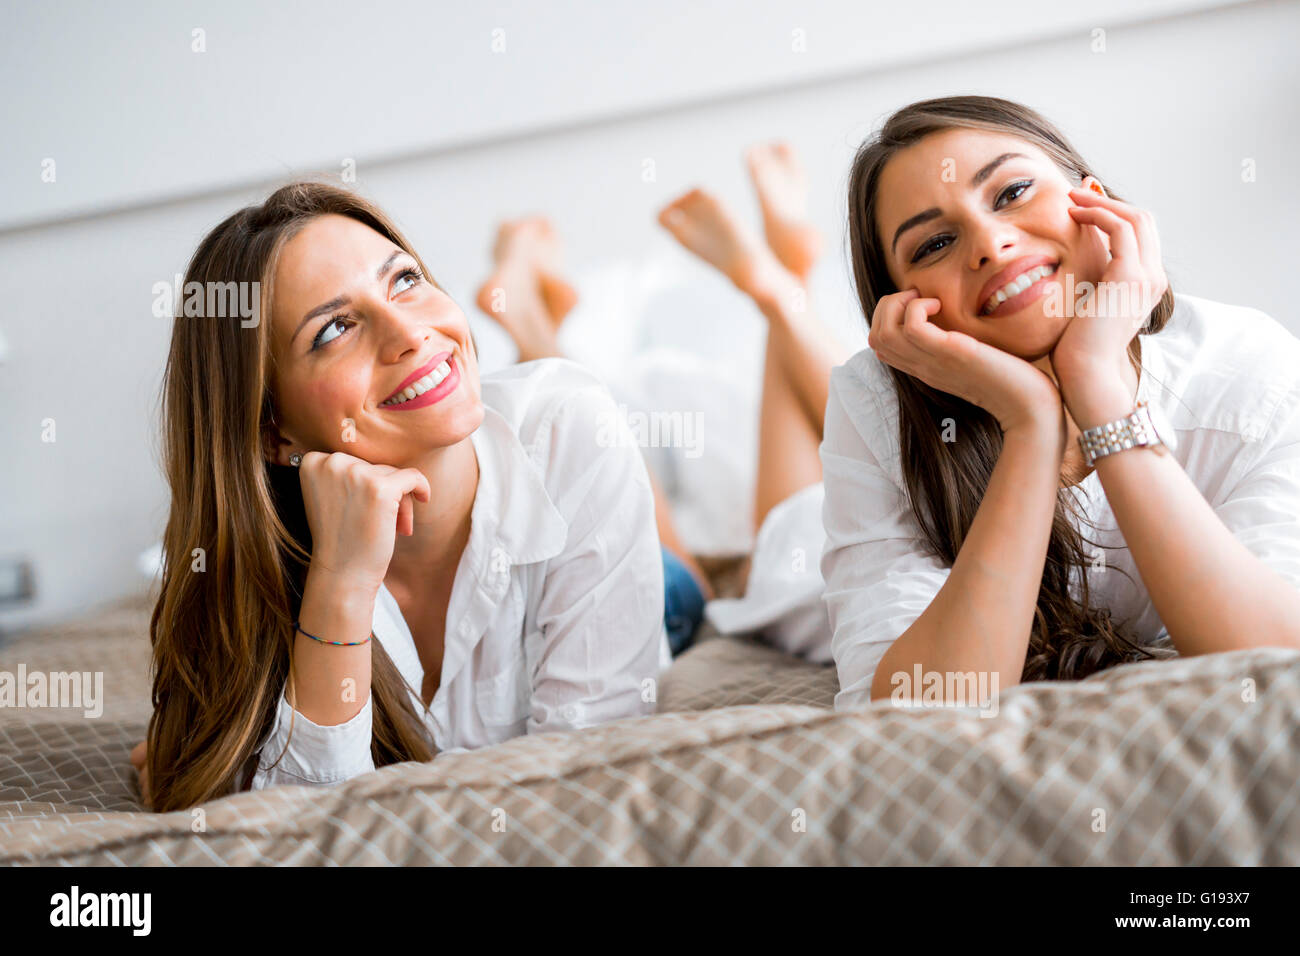 Two beautiful girls talking and smiling while lying on a luxurious  bed - Stock Image